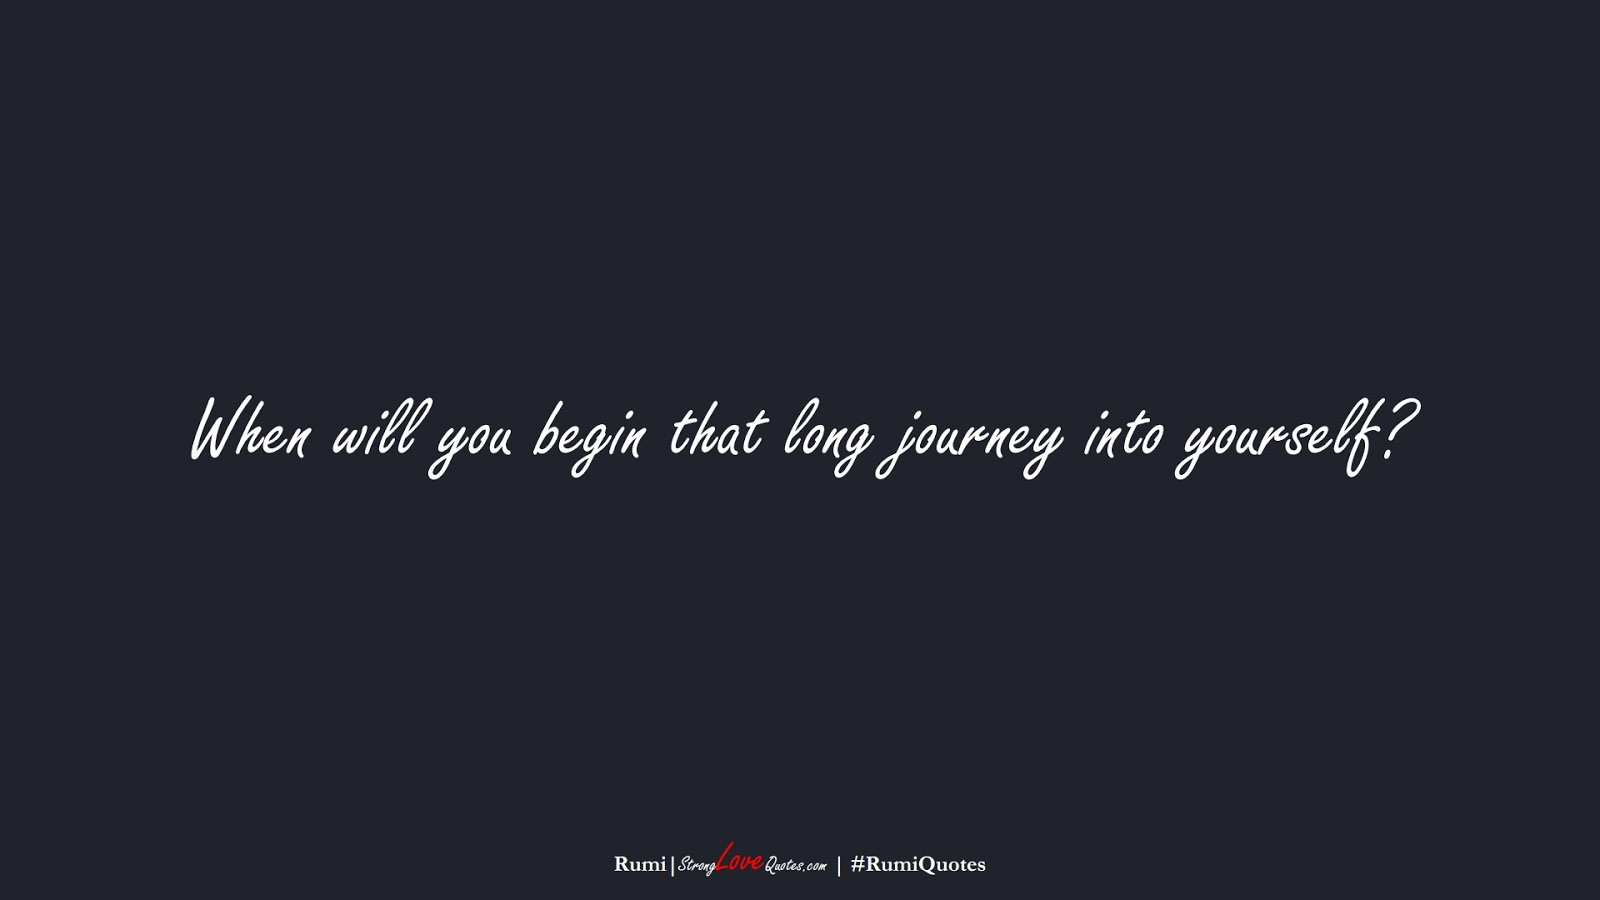 When will you begin that long journey into yourself? (Rumi);  #RumiQuotes